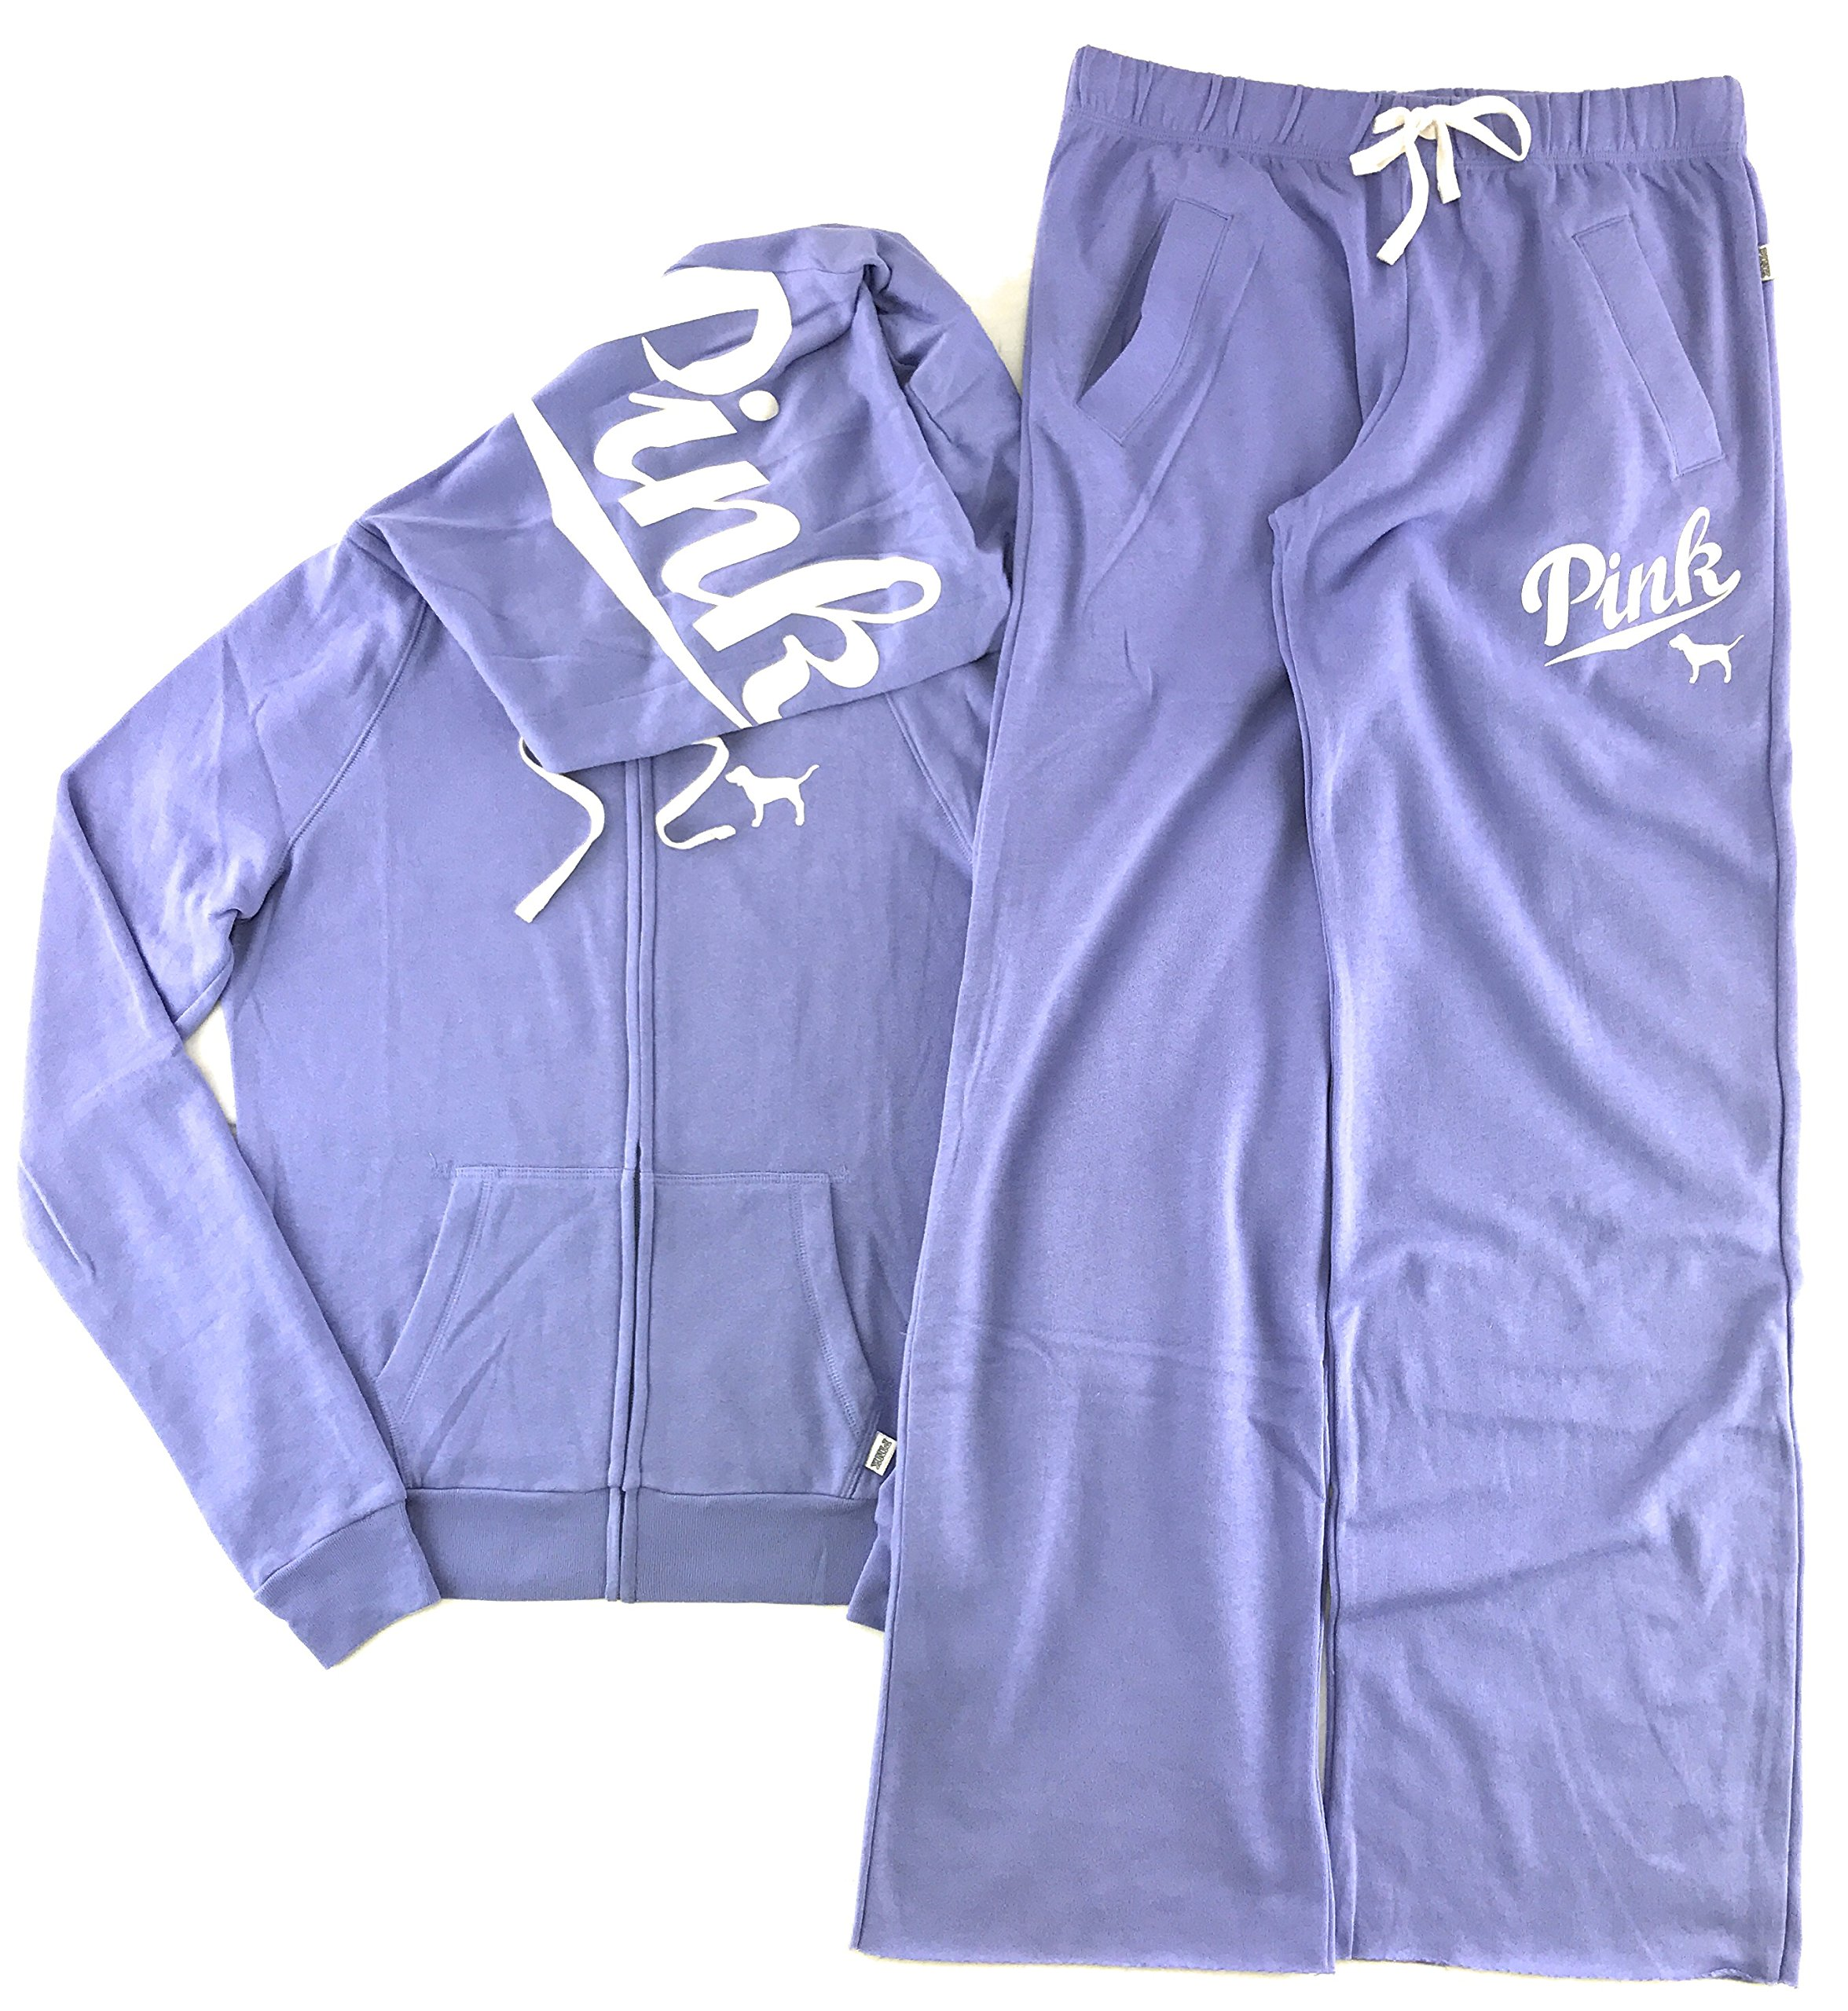 Victoria's Secret Pink Hoodie and Sweat Pants Set Lustrous Lilac Small